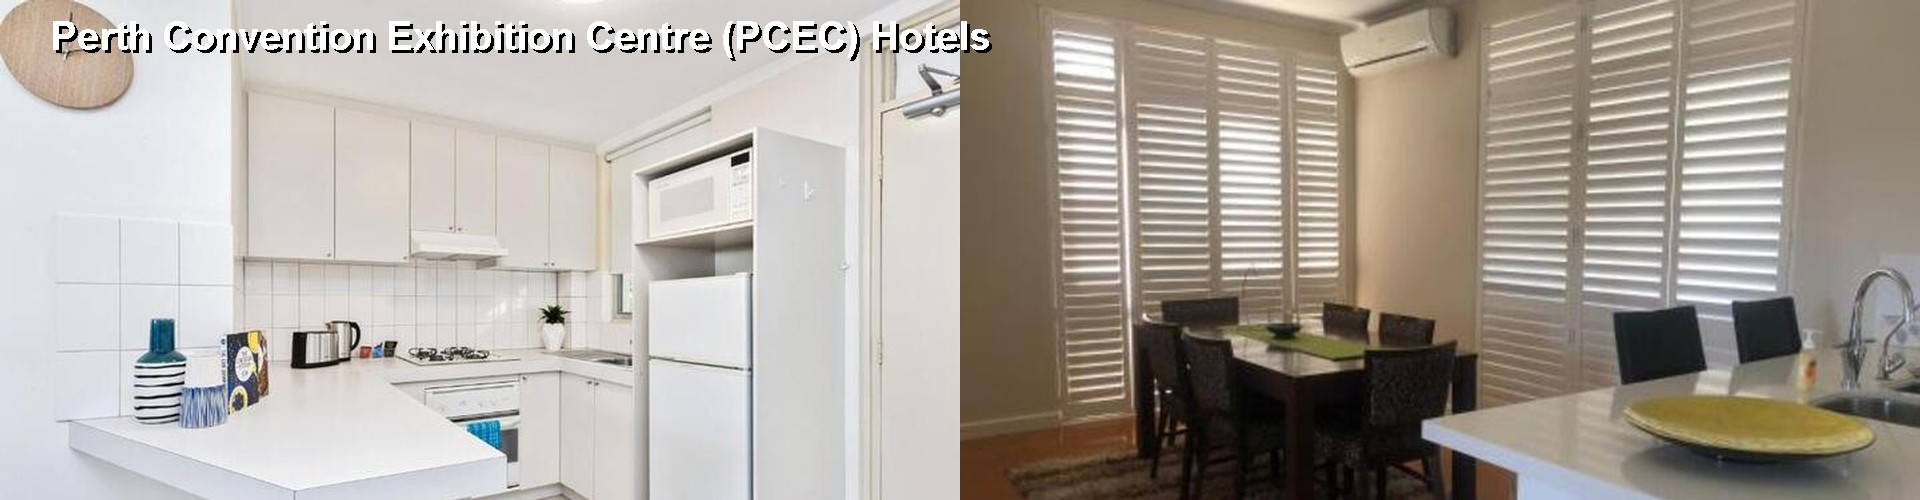 5 Best Hotels near Perth Convention Exhibition Centre (PCEC)